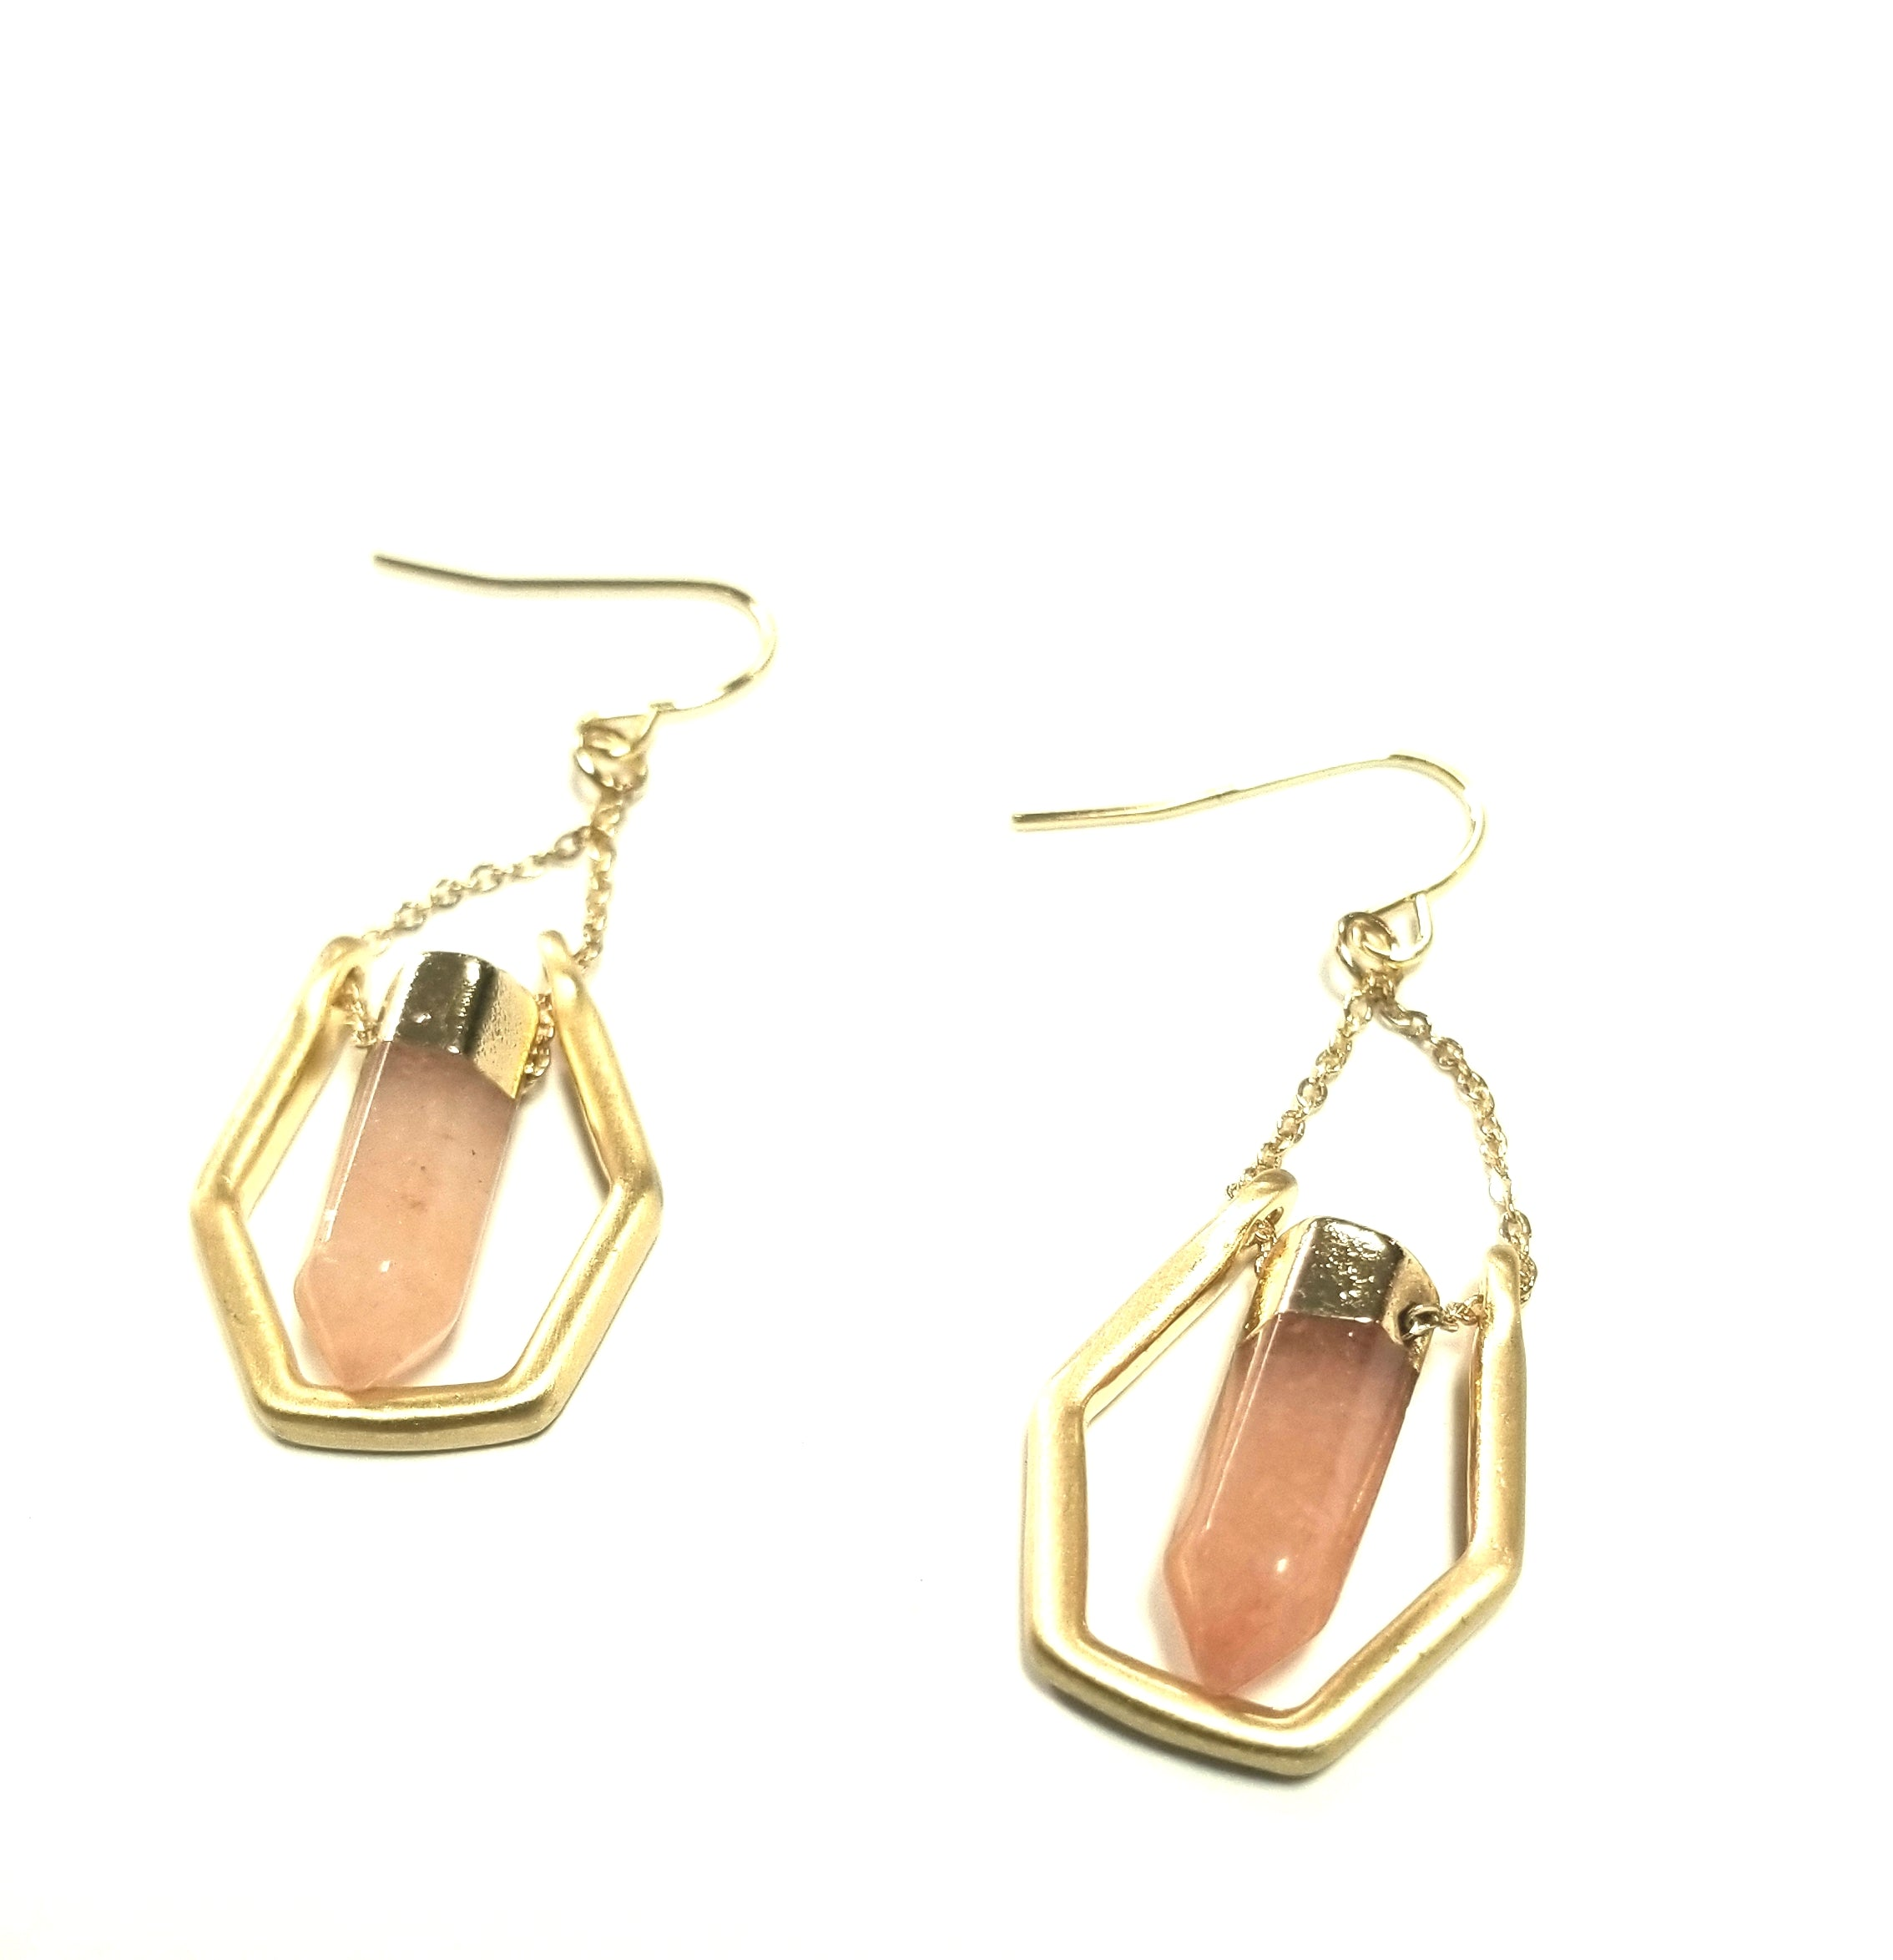 stone earrings hexagon jewellery isolde hexagonal bonas stud oliver